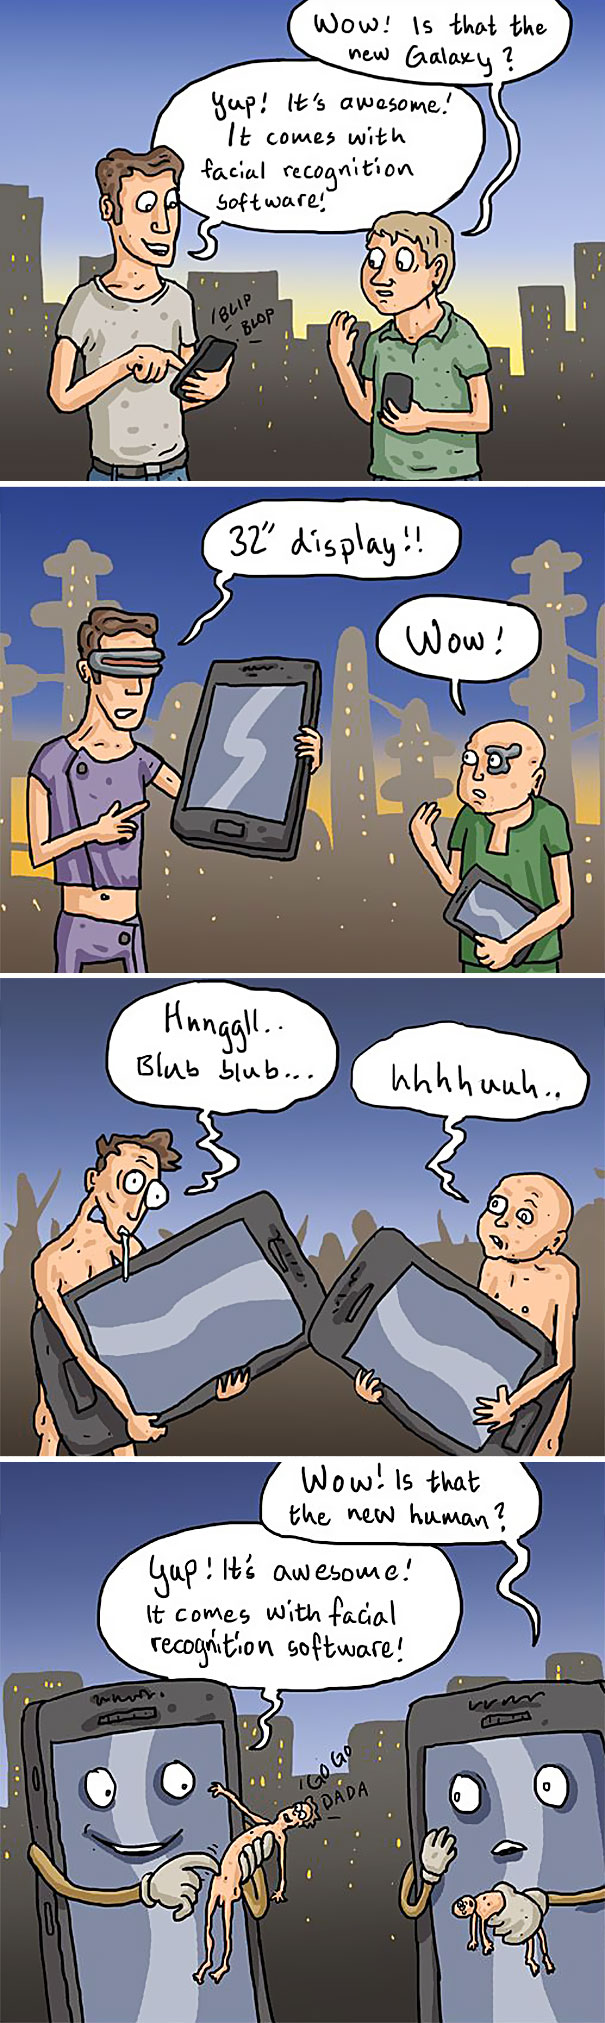 smartphone-addiction-illustrations-cartoons-25__605